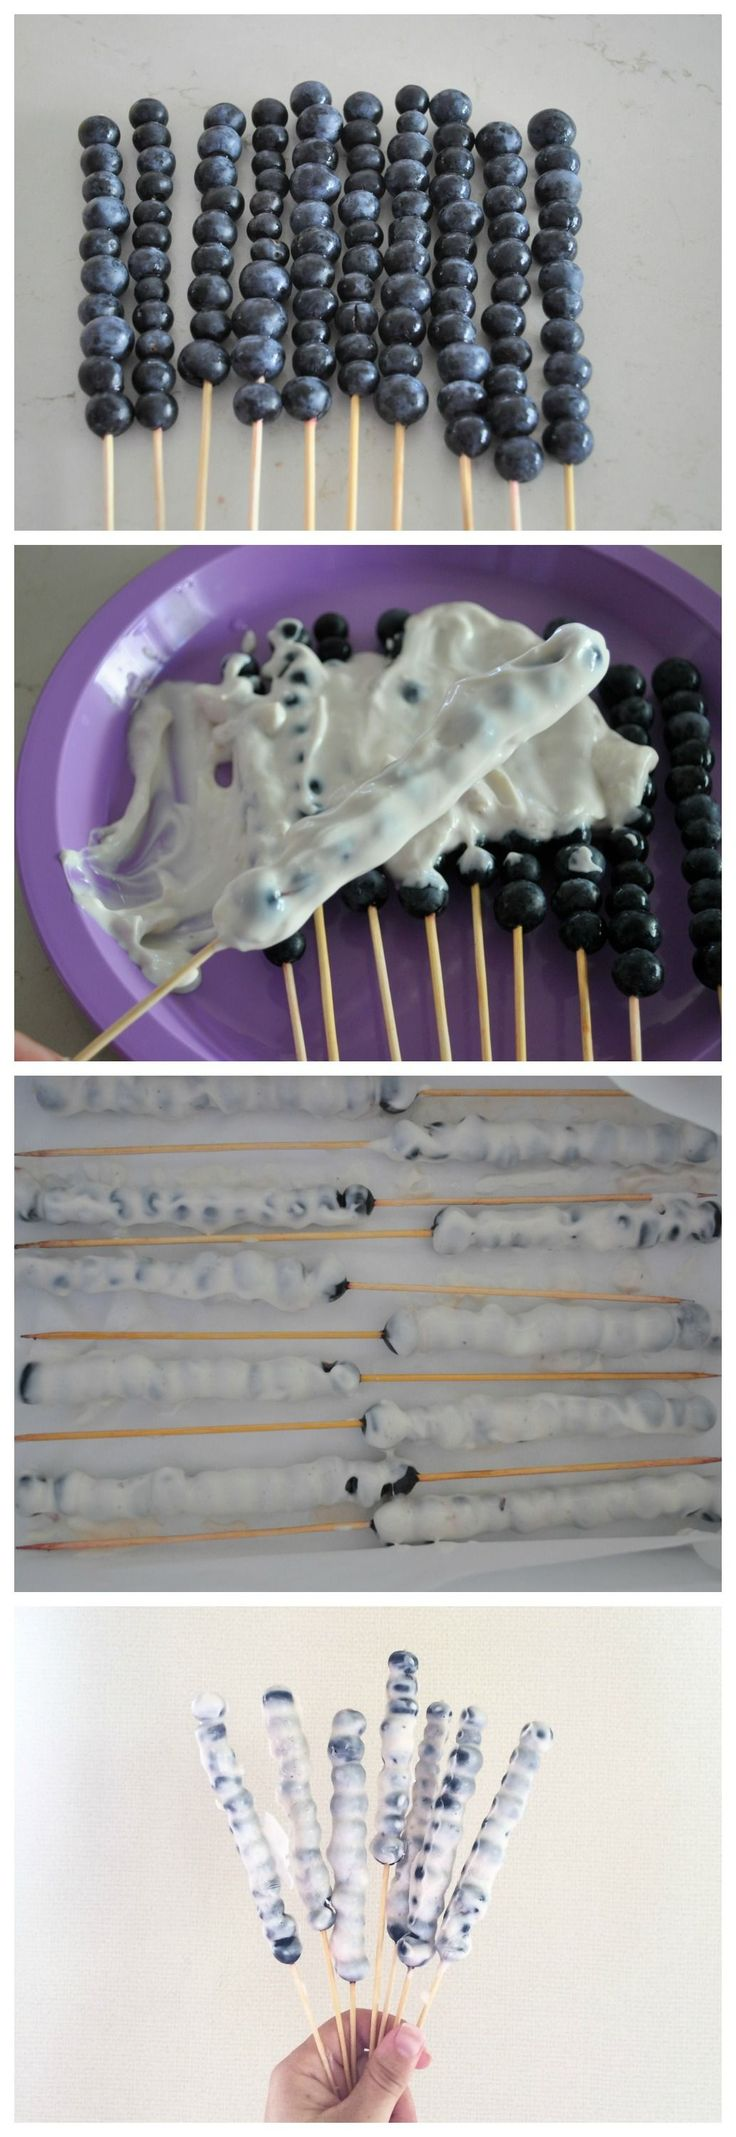 Frozen-Blueberry-Yoghurt-Kebabs. These look delicious but healthy! xx